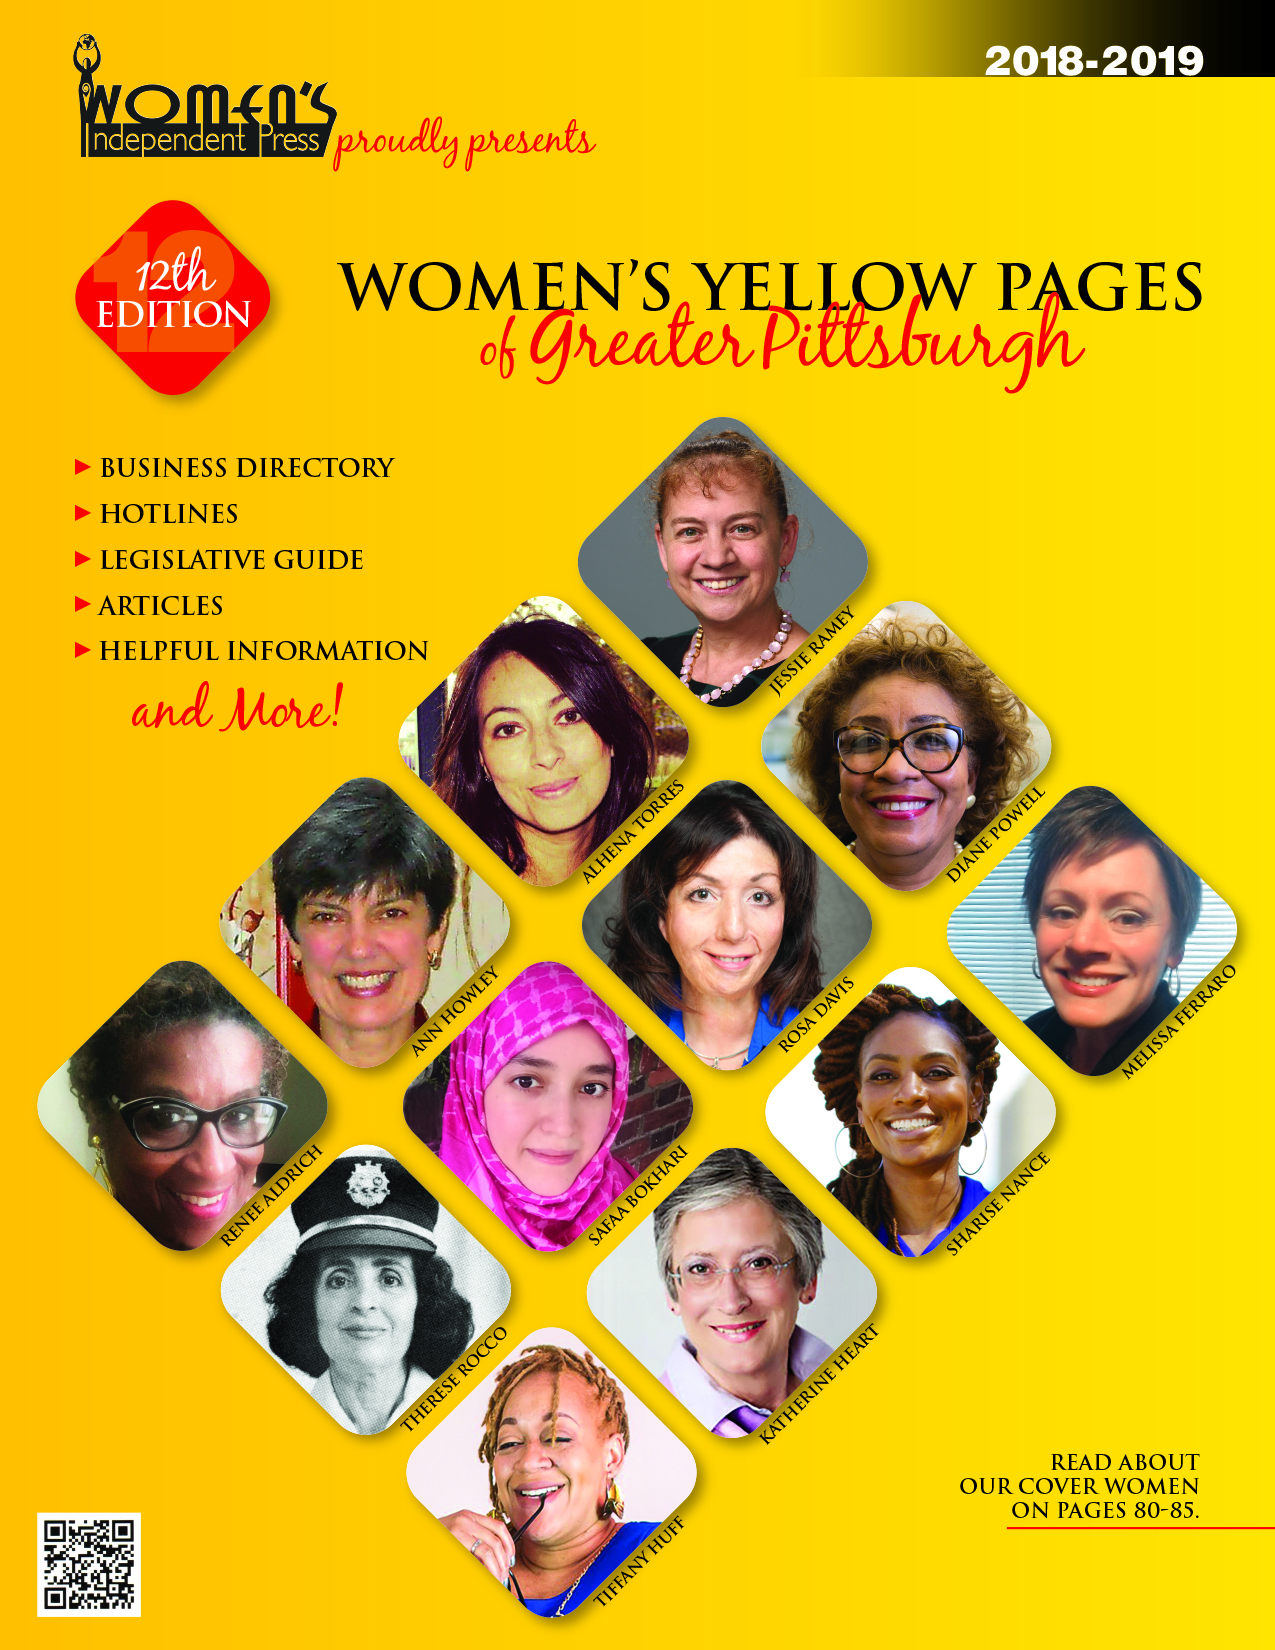 Women's Yellow Pages of Greater Pittsburgh